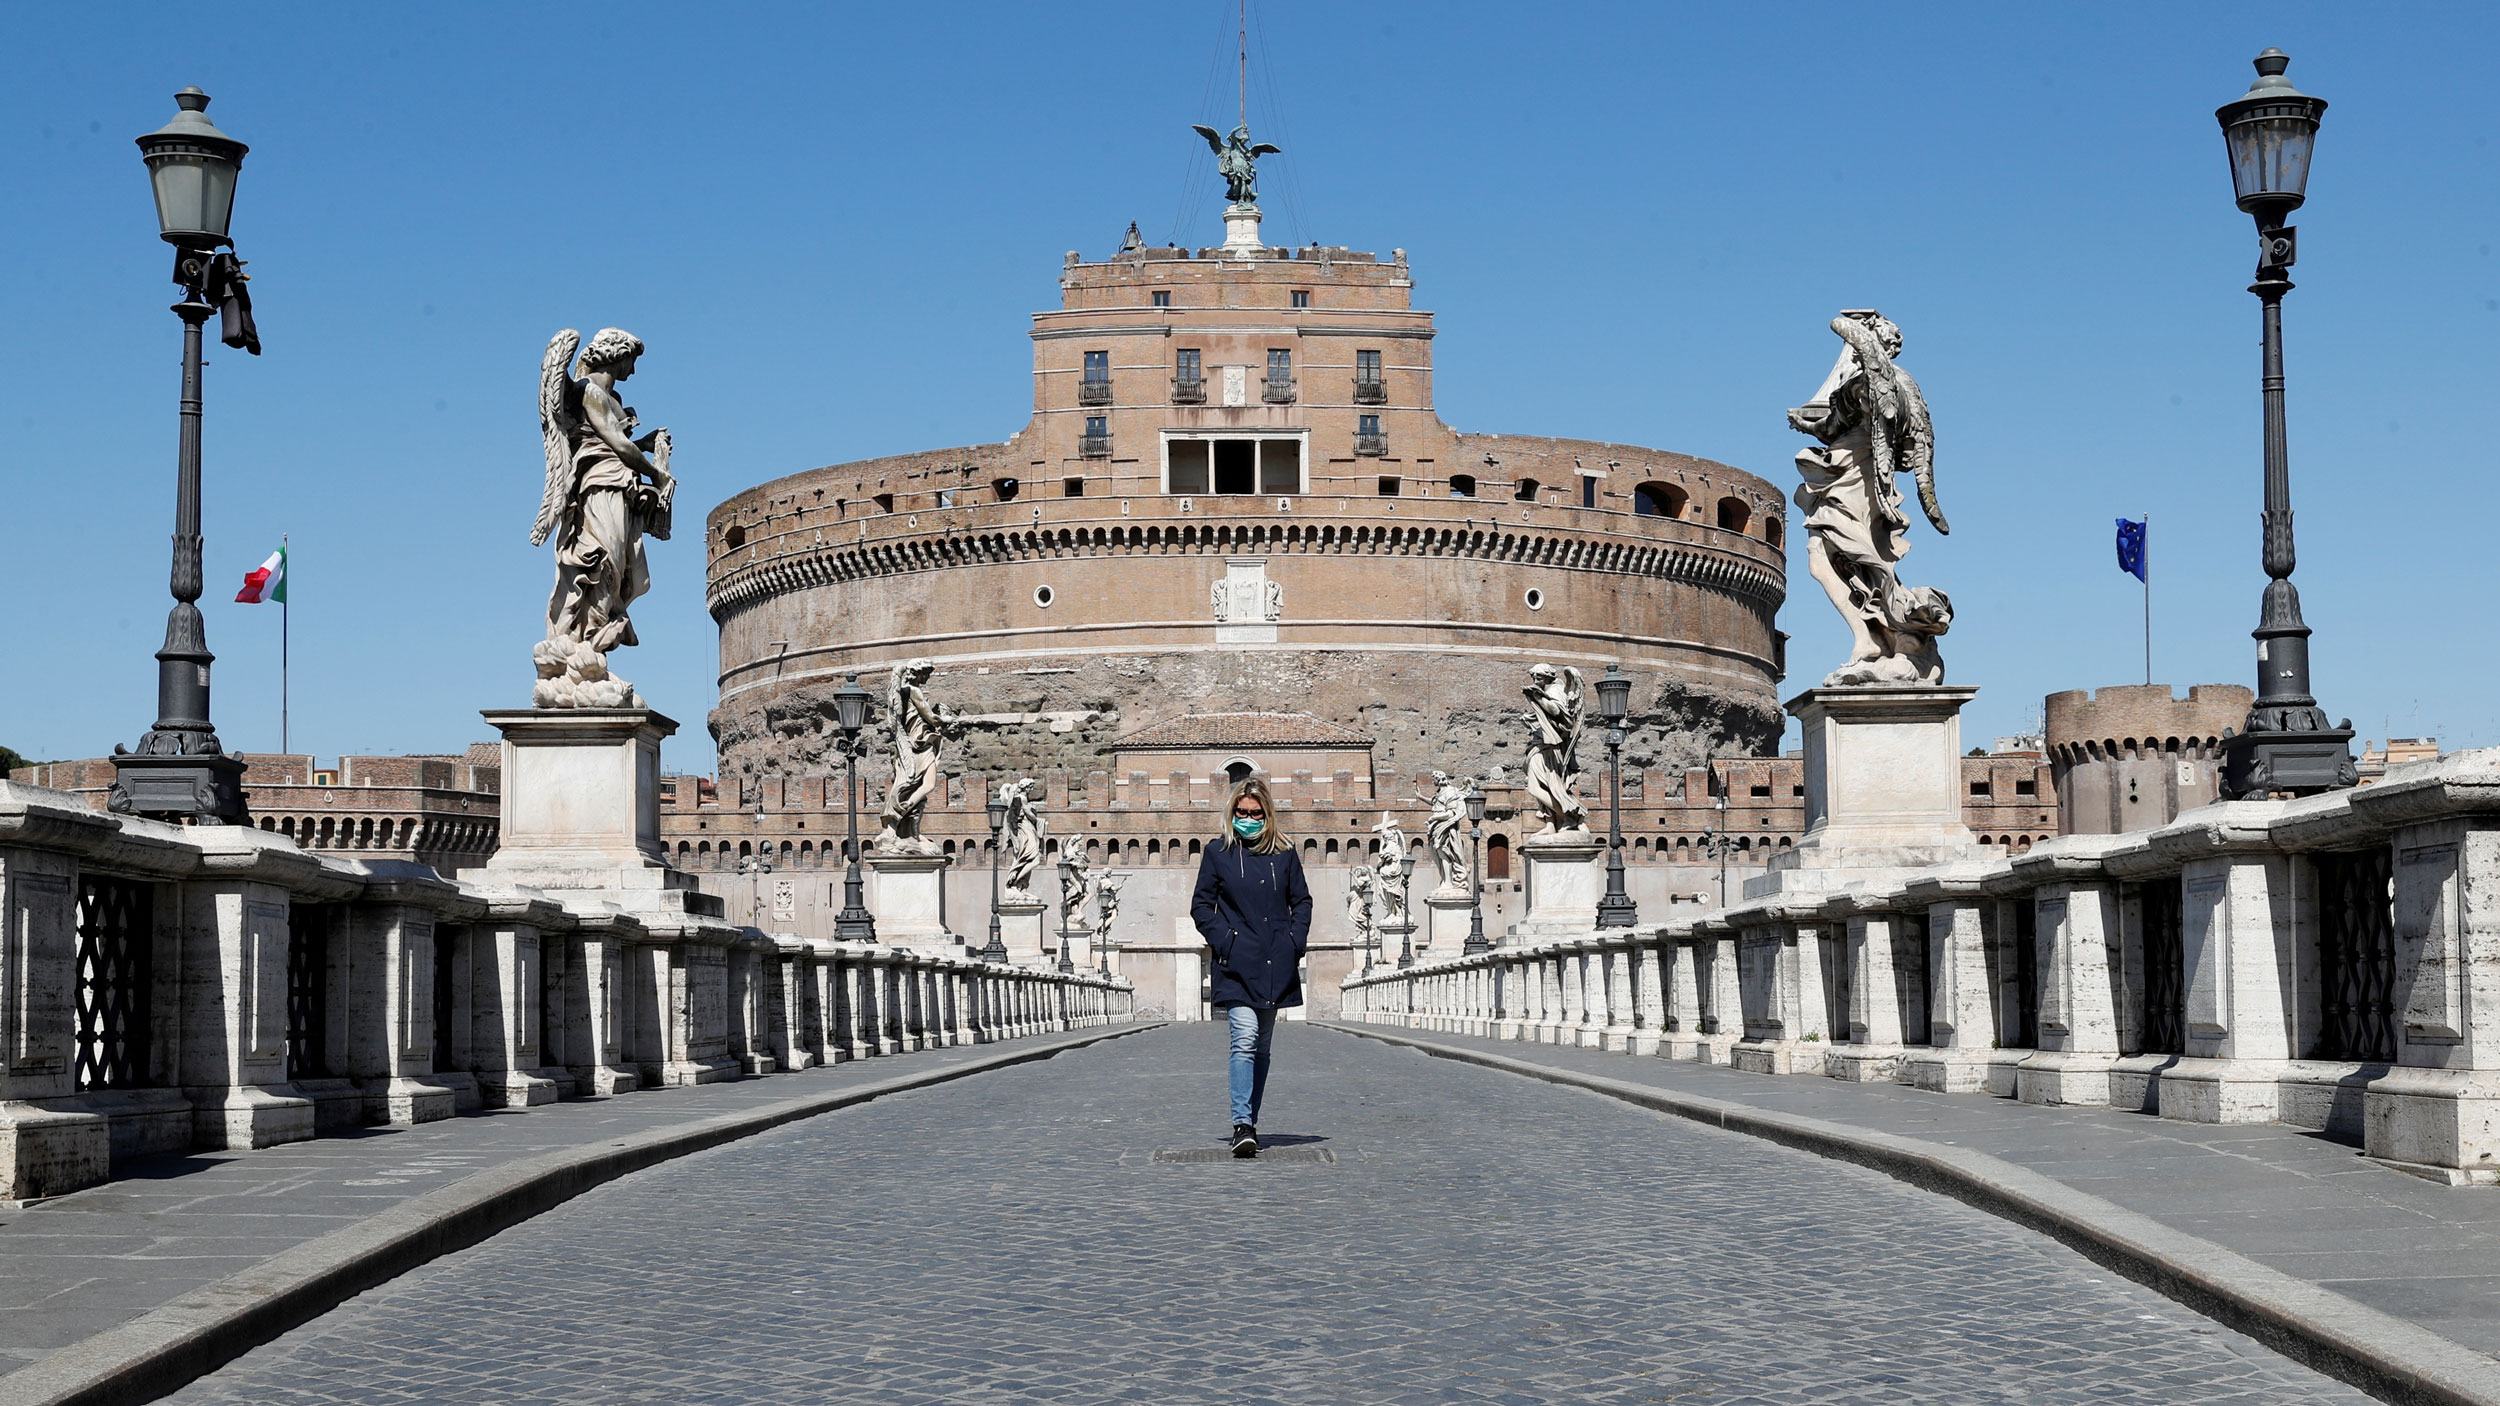 A woman wearing blue coat and a protective mask is shown walking on a bridge lined with stone statues outside Castel Sant'Angelo.